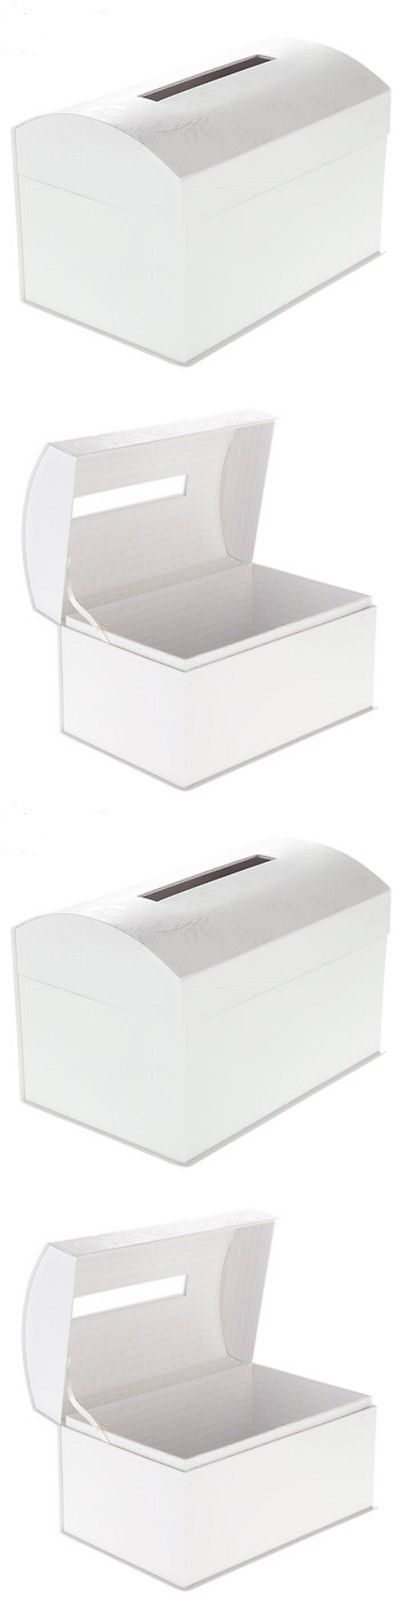 Card Boxes and Wishing Wells 168189 White Wedding Card Box Shabby – Ebay Wedding Card Box